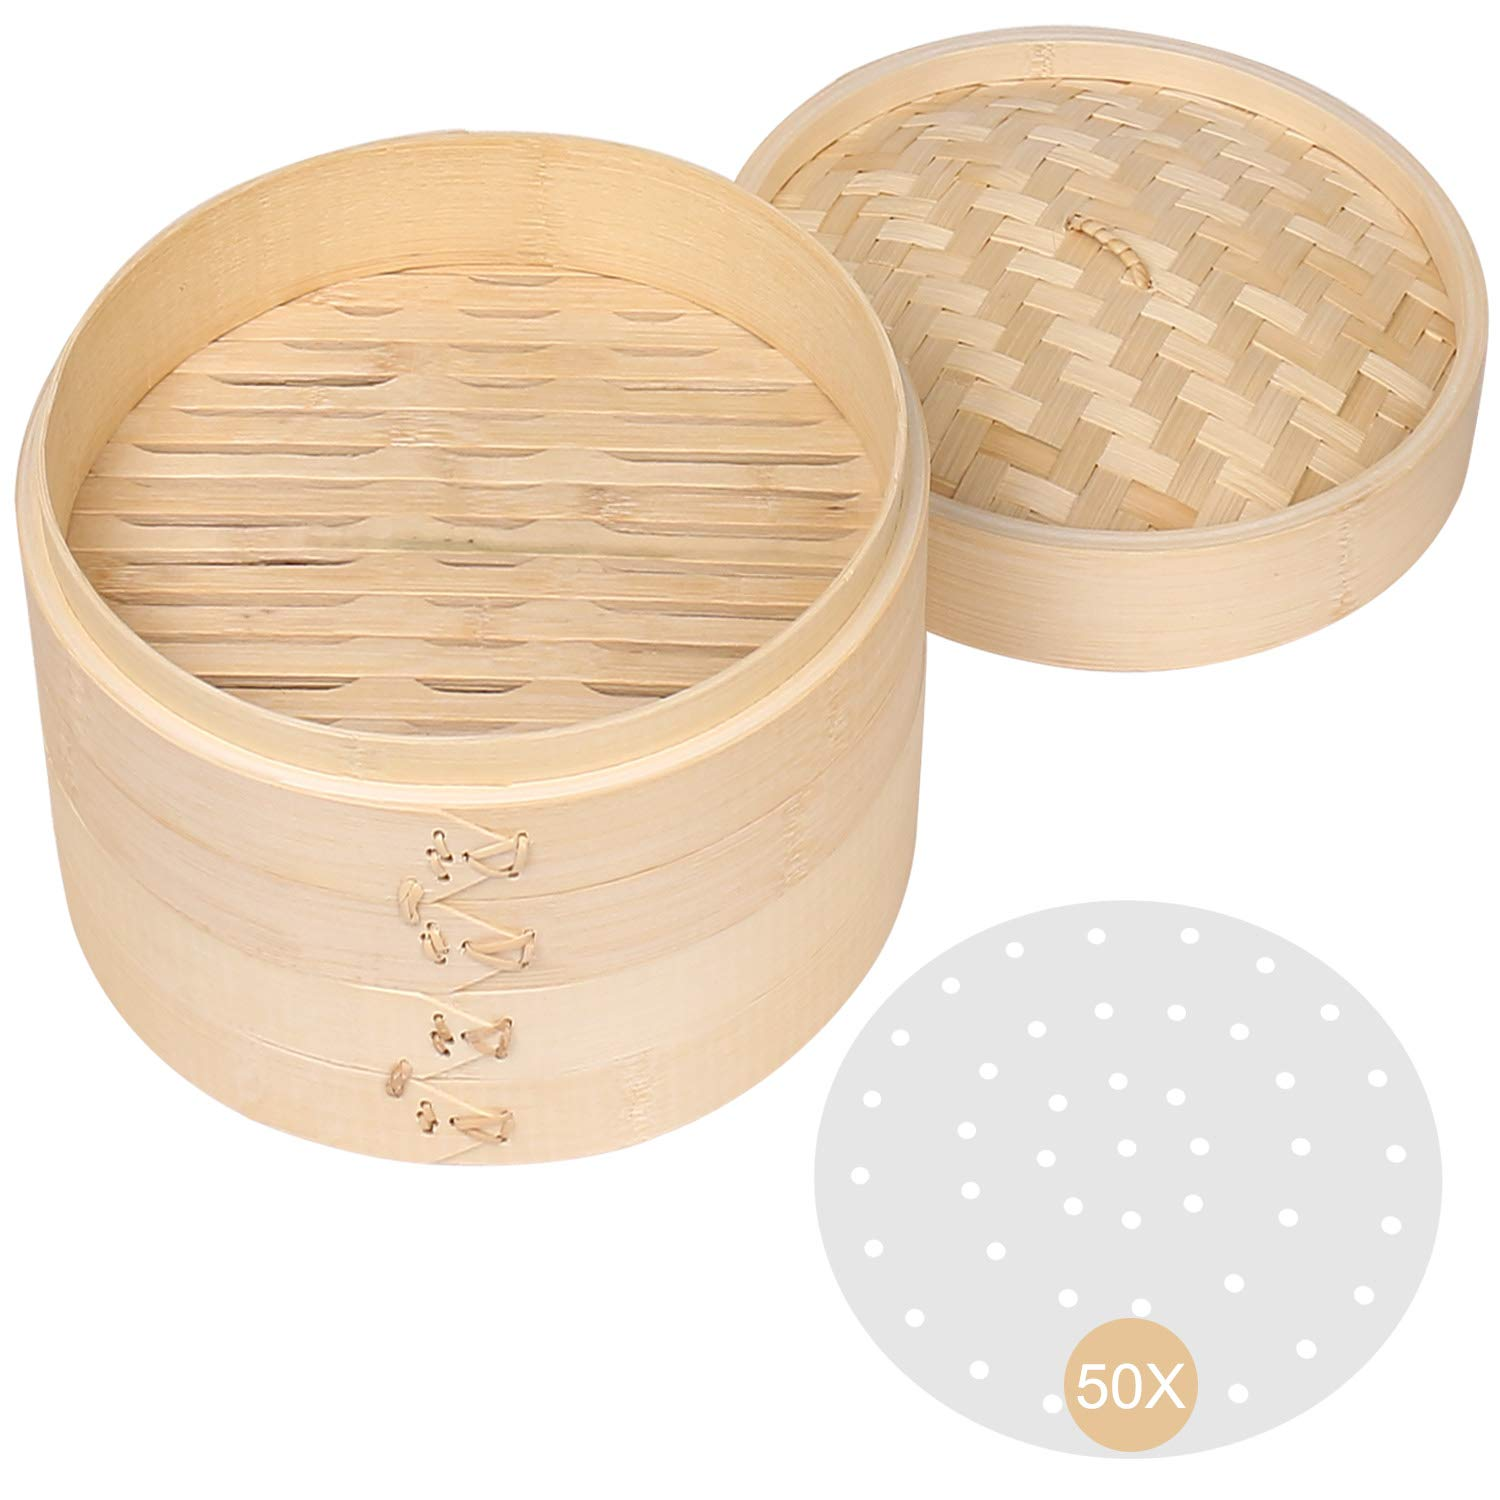 Bamboo Steamer Basket, 10 Inch Dumpling Steamer Bamboo, Two Tier Baskets with 50pcs Liners, Dim Sum Steamer & Bao Bun Chinese Food Steamers For Cooking Vegetables, Fish, Meat, Chicken, Veggies, Rice